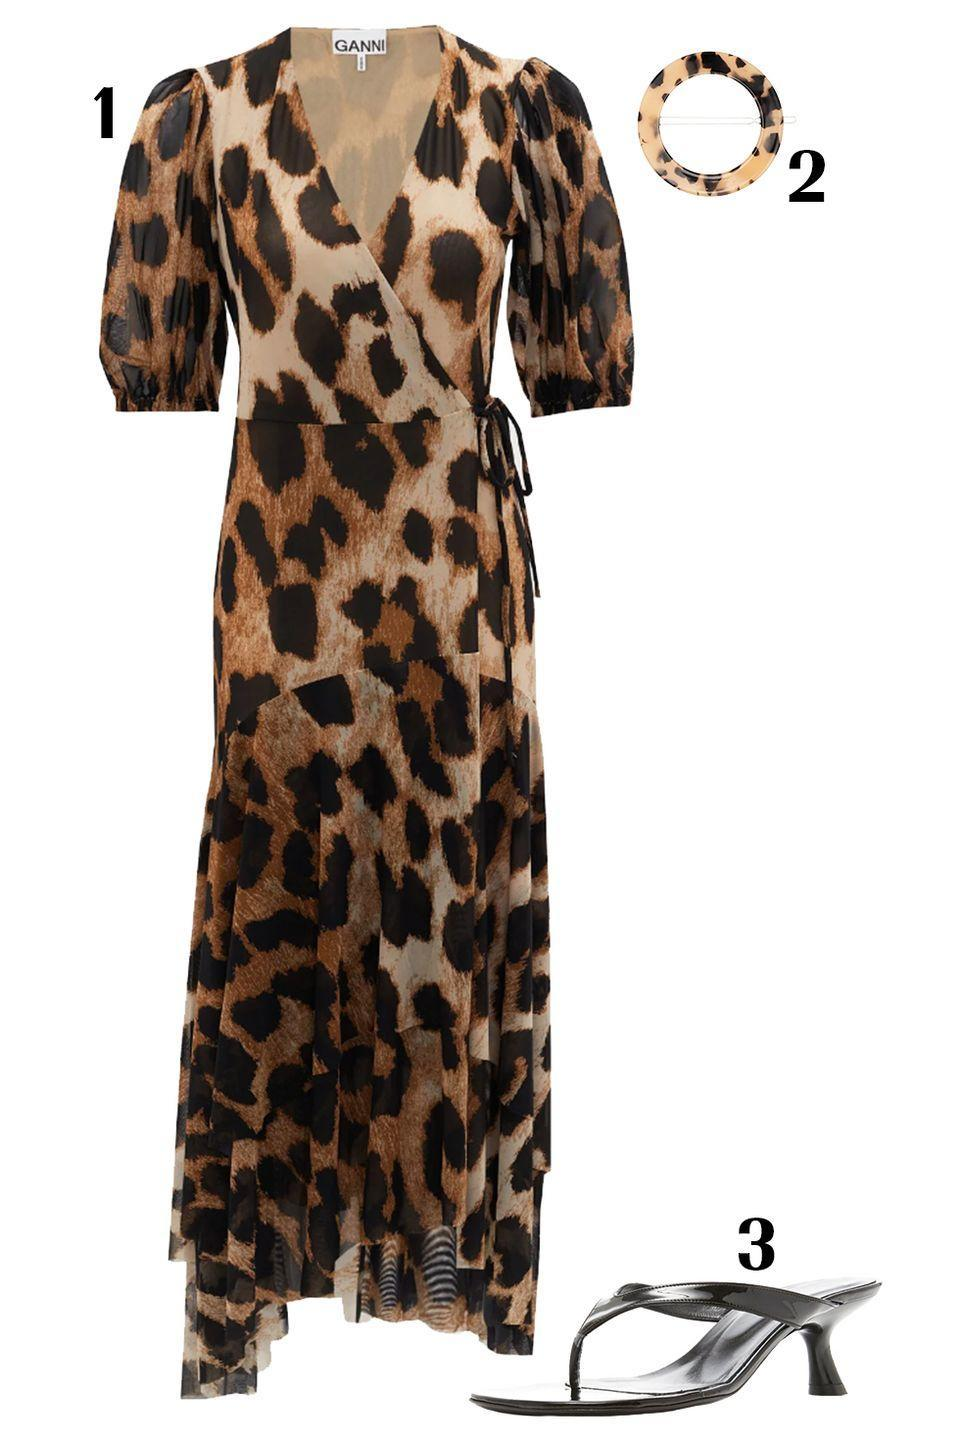 "<p>Woman on the prowl. This mesh leopard dress is a breathable fabric and perfect for summer temperatures that tip the scale. Pair with a matching clip for an effortless hair-do that takes no more than 30 seconds. And just like that, you're good to go. </p><p>1)<a href=""https://www.matchesfashion.com/us/products/Ganni-Leopard-print-wrap-mesh-dress-1341671"" rel=""nofollow noopener"" target=""_blank"" data-ylk=""slk:Ganni dress,"" class=""link rapid-noclick-resp""> Ganni dress,</a> $345 2) <a href=""https://www.farfetch.com/shopping/women/valet-studio-sarah-tortoiseshell-effect-round-hair-clip-set-item-14839151.aspx?storeid=9359"" rel=""nofollow noopener"" target=""_blank"" data-ylk=""slk:Valet Studio hair clip set"" class=""link rapid-noclick-resp"">Valet Studio hair clip set</a>, $80 3) <a href=""https://www.modaoperandi.com/simon-miller-ss20/beep-leather-thong-sandals-3?color=black&size=IT%2039&country=US&ranMID=37385&ranEAID=1808364&ranSiteID=J84DHJLQkR4-ctr_GooWnVZ.rdhZ5Z1fRw&mid=37385&utm_source=rakuten_affiliate&utm_medium=ShopStyle+%28US%29&utm_campaign=conversion&utm_term=&siteID=J84DHJLQkR4-ctr_GooWnVZ.rdhZ5Z1fRw"" rel=""nofollow noopener"" target=""_blank"" data-ylk=""slk:Simon Miller sandals"" class=""link rapid-noclick-resp"">Simon Miller sandals</a>, $390</p>"